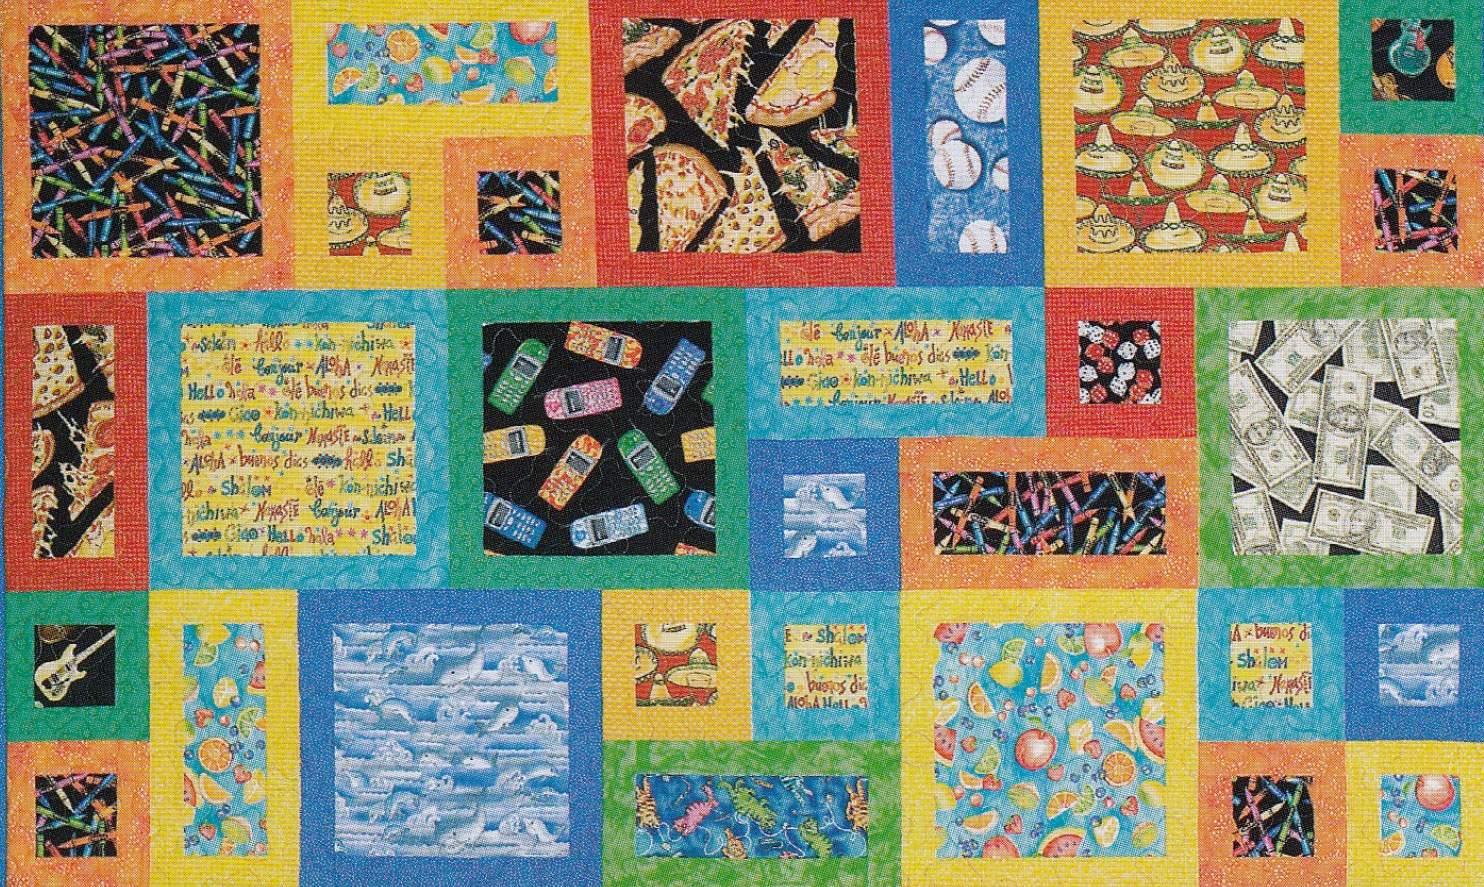 All-About-Me-quilt-sewing-pattern-Atkinson-Designs-1